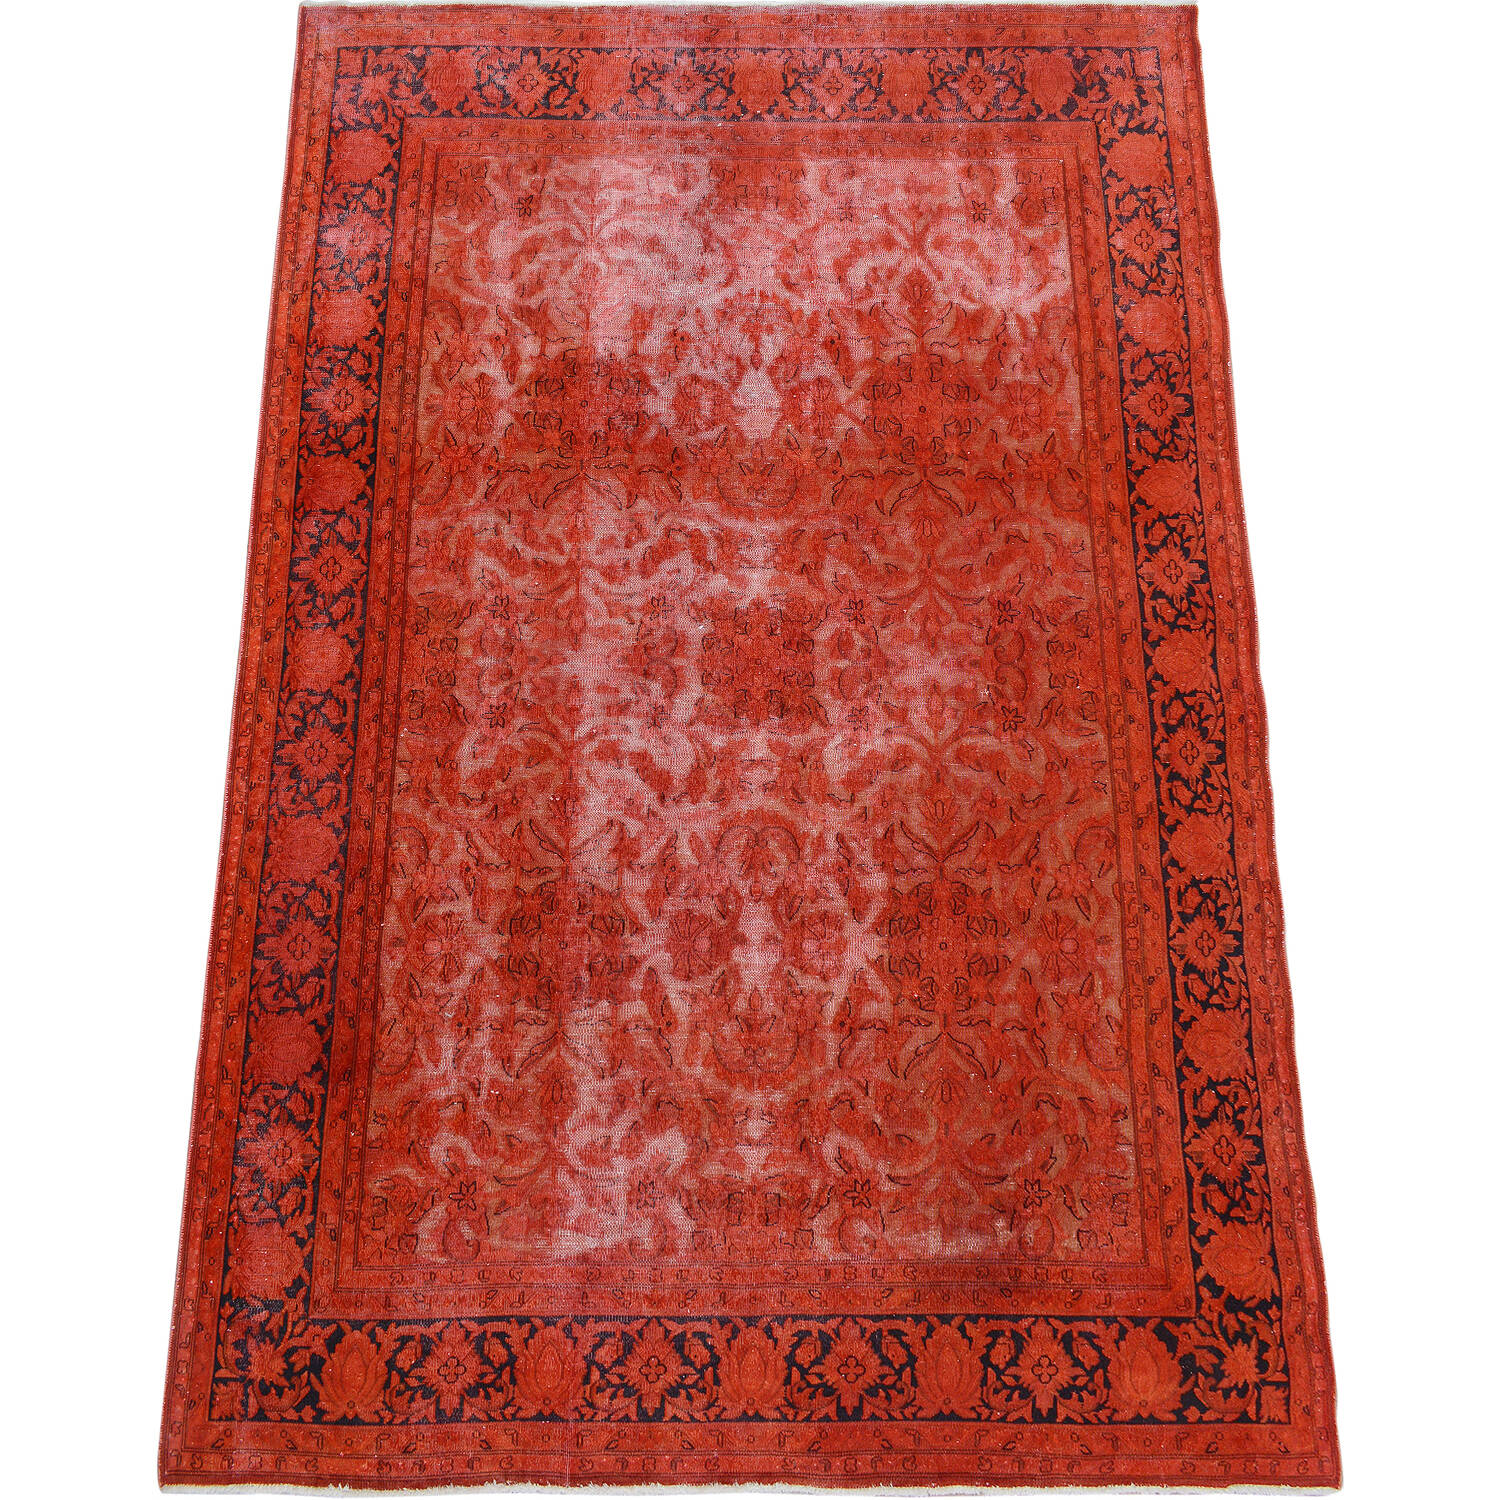 Antique Over Dyed Floral Kerman Persian Area Rug 7x9 image 2